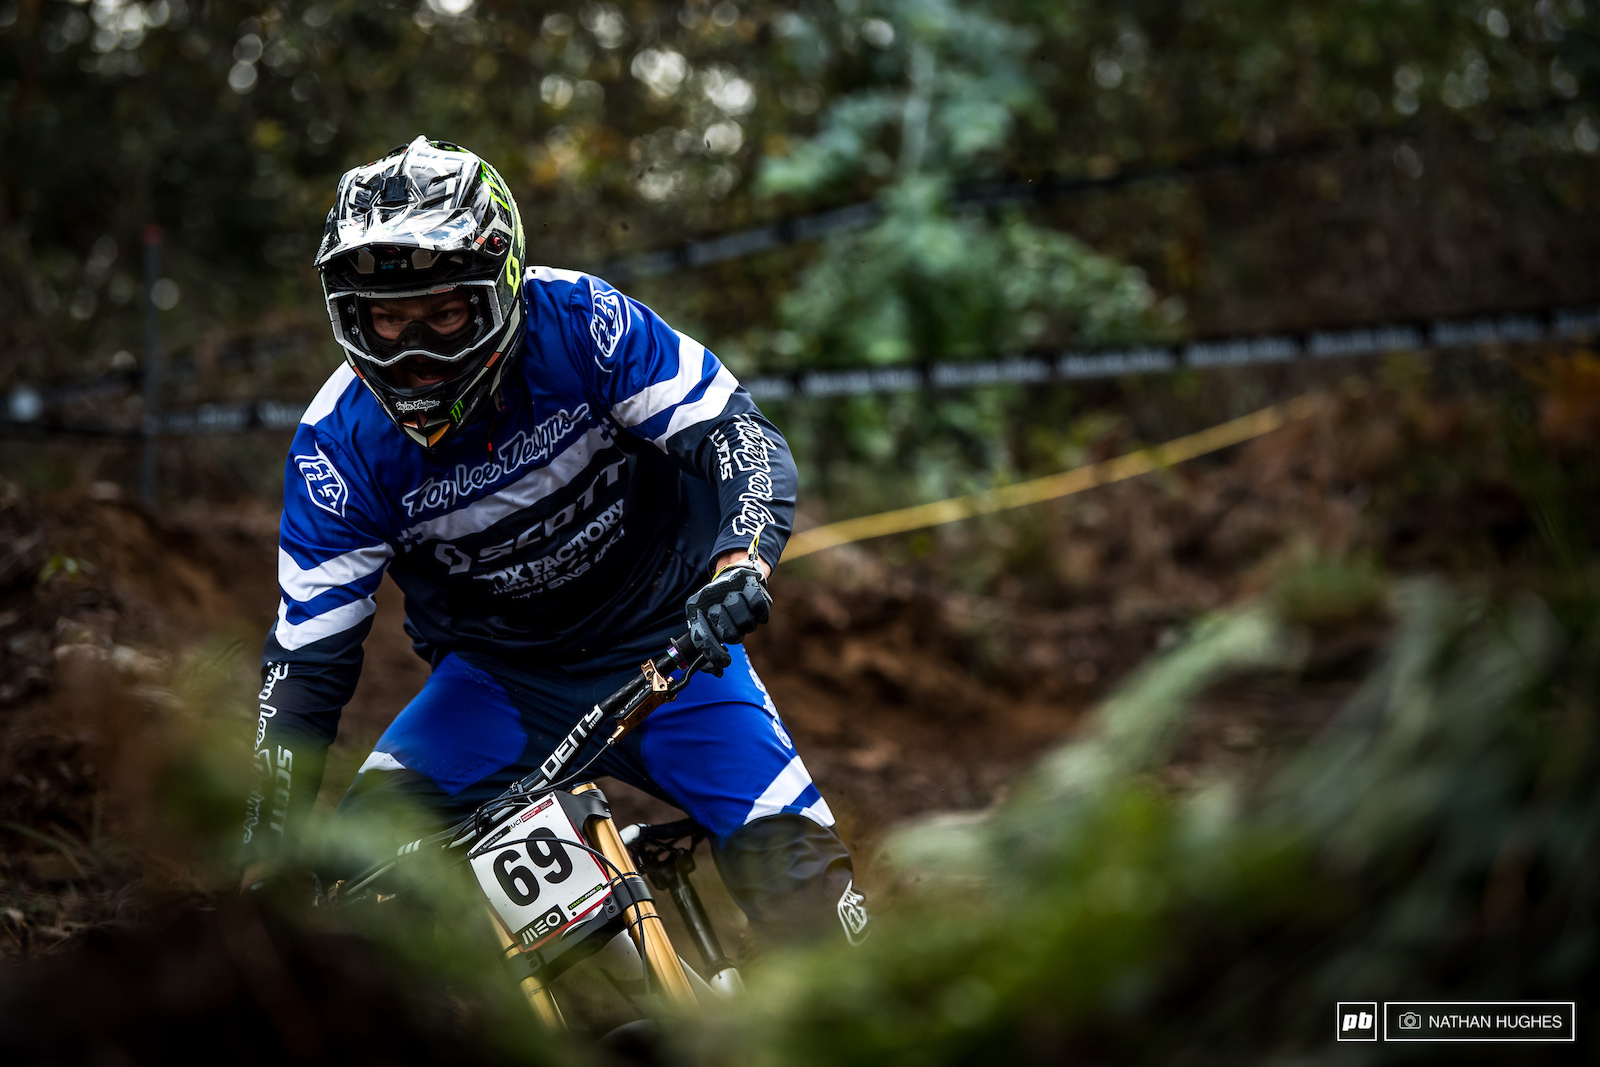 This track is all about the grinning and the gurning as demonstrated by Brendan Fairclough.